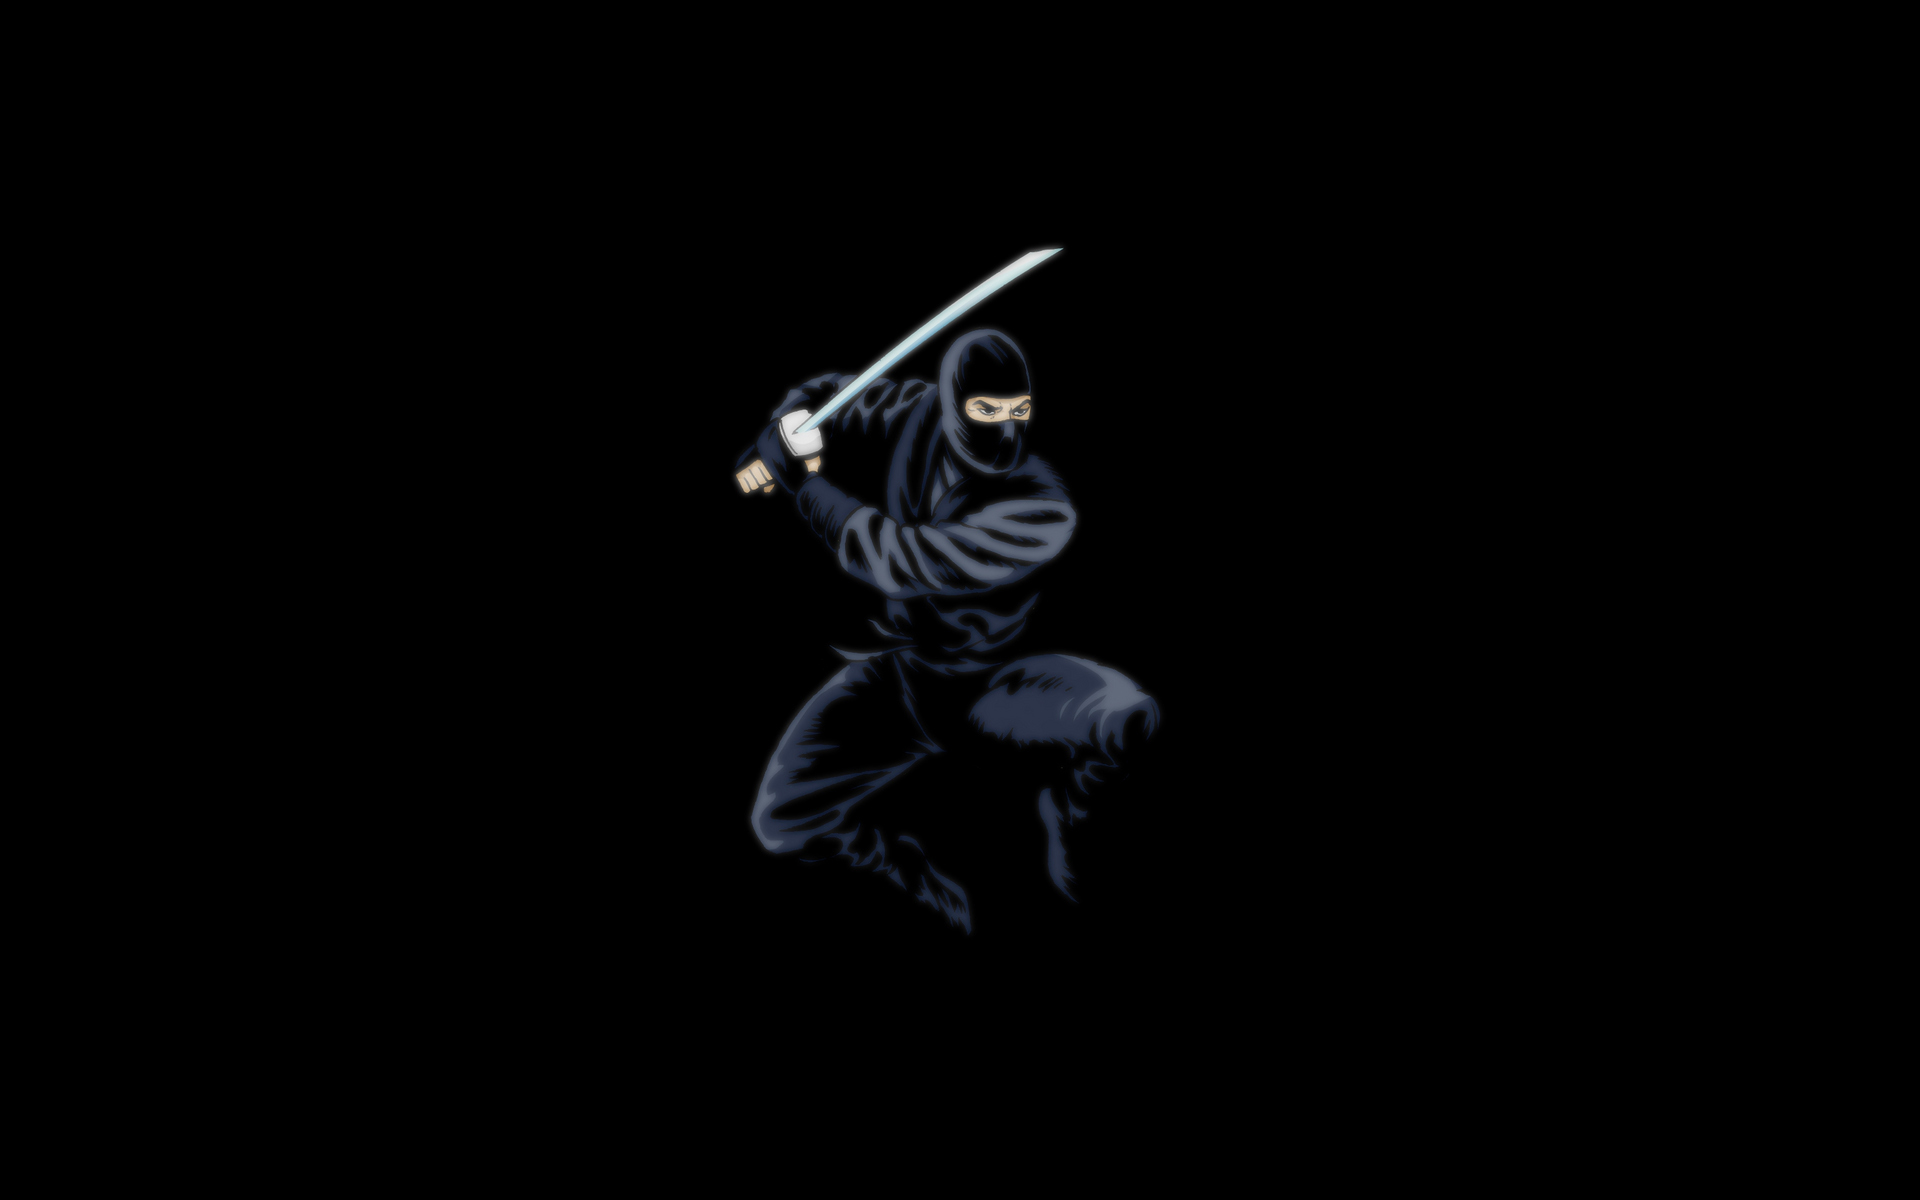 Ninja Wallpapers, Pictures, Images